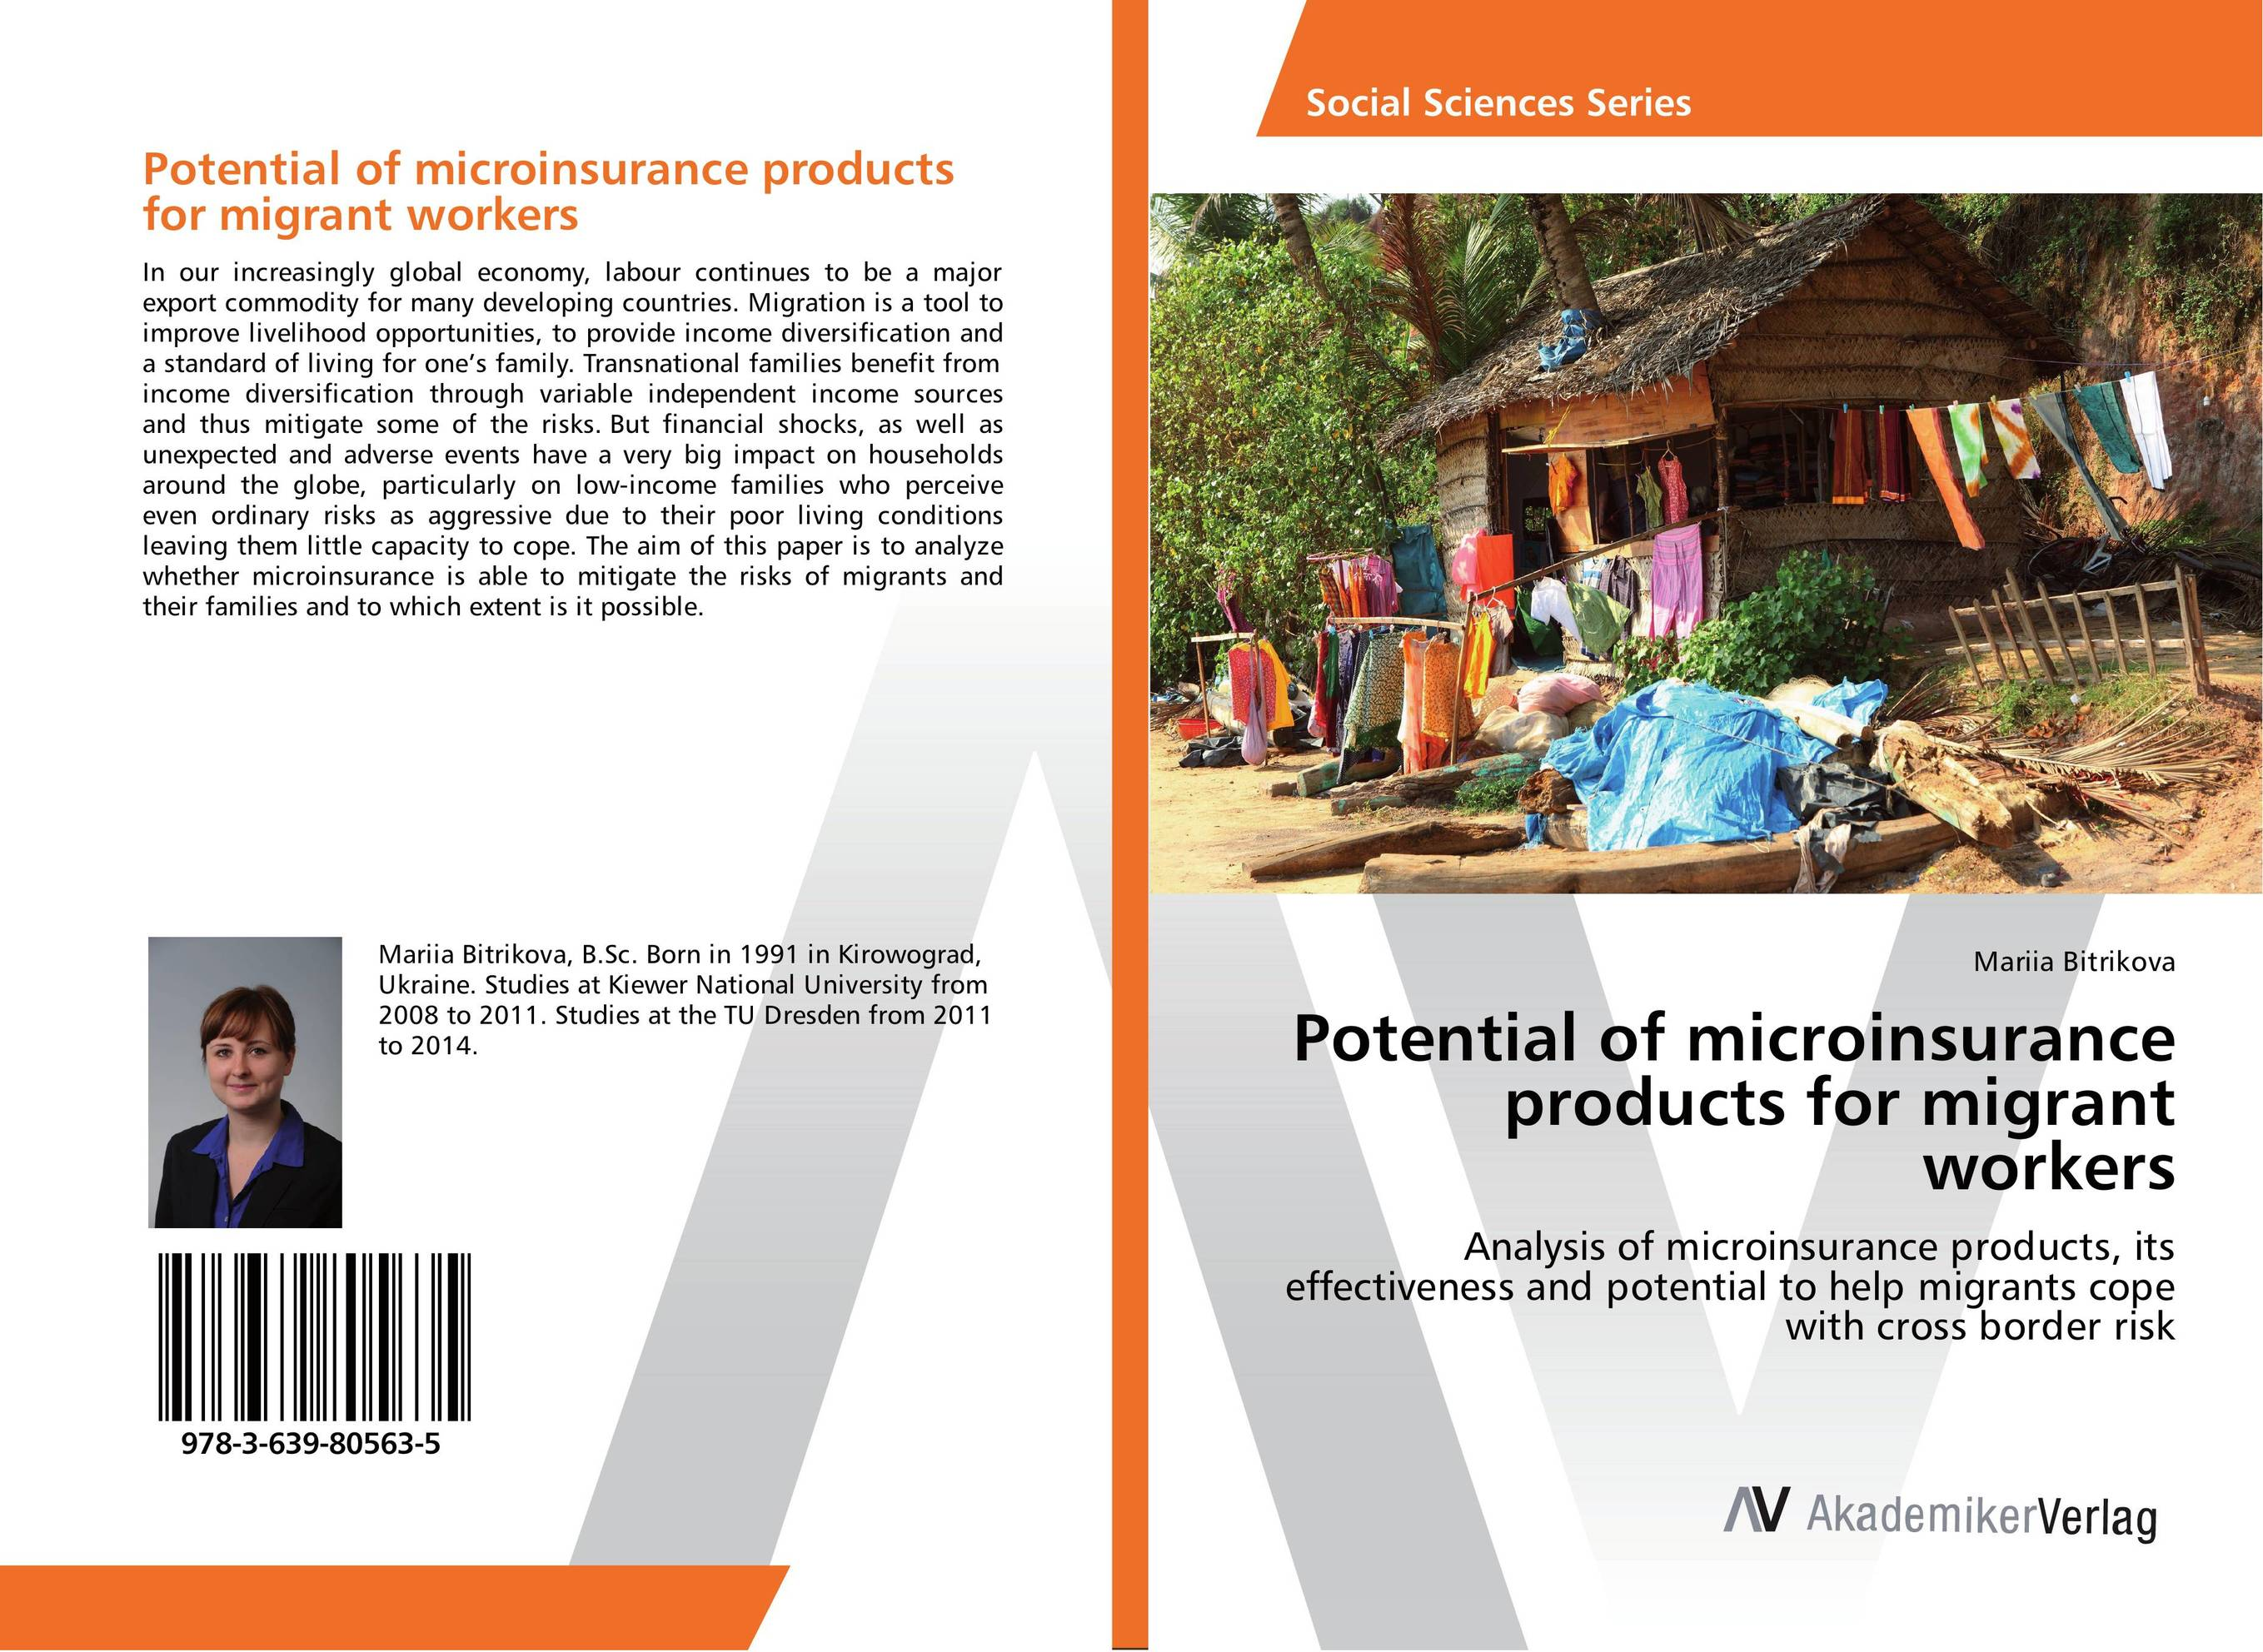 Potential of microinsurance products for migrant workers